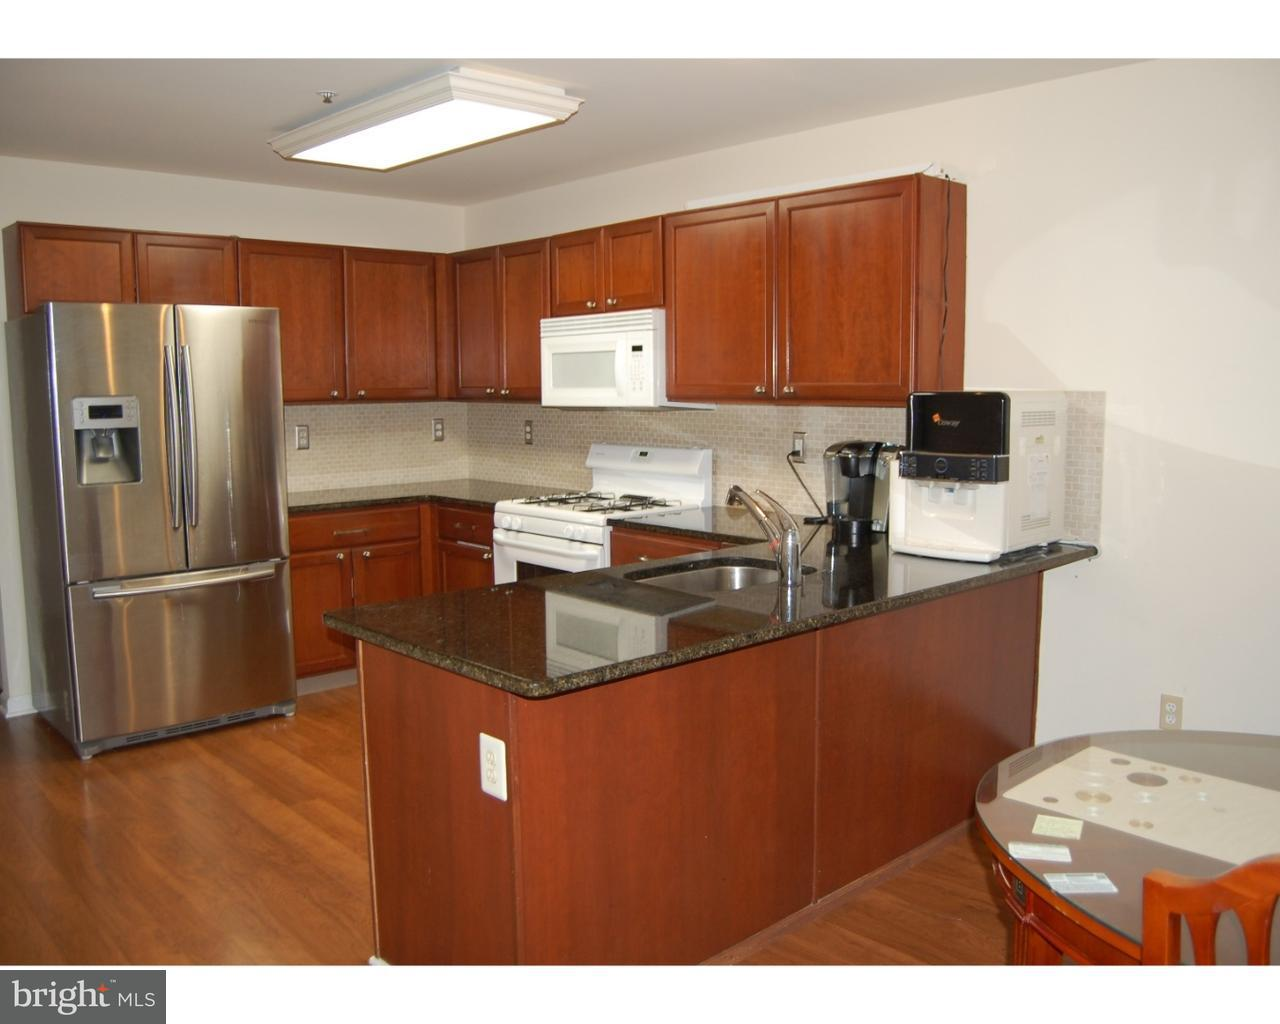 67 BRISTOL CT, NORRISTOWN - Listed at $2,200, NORRISTOWN